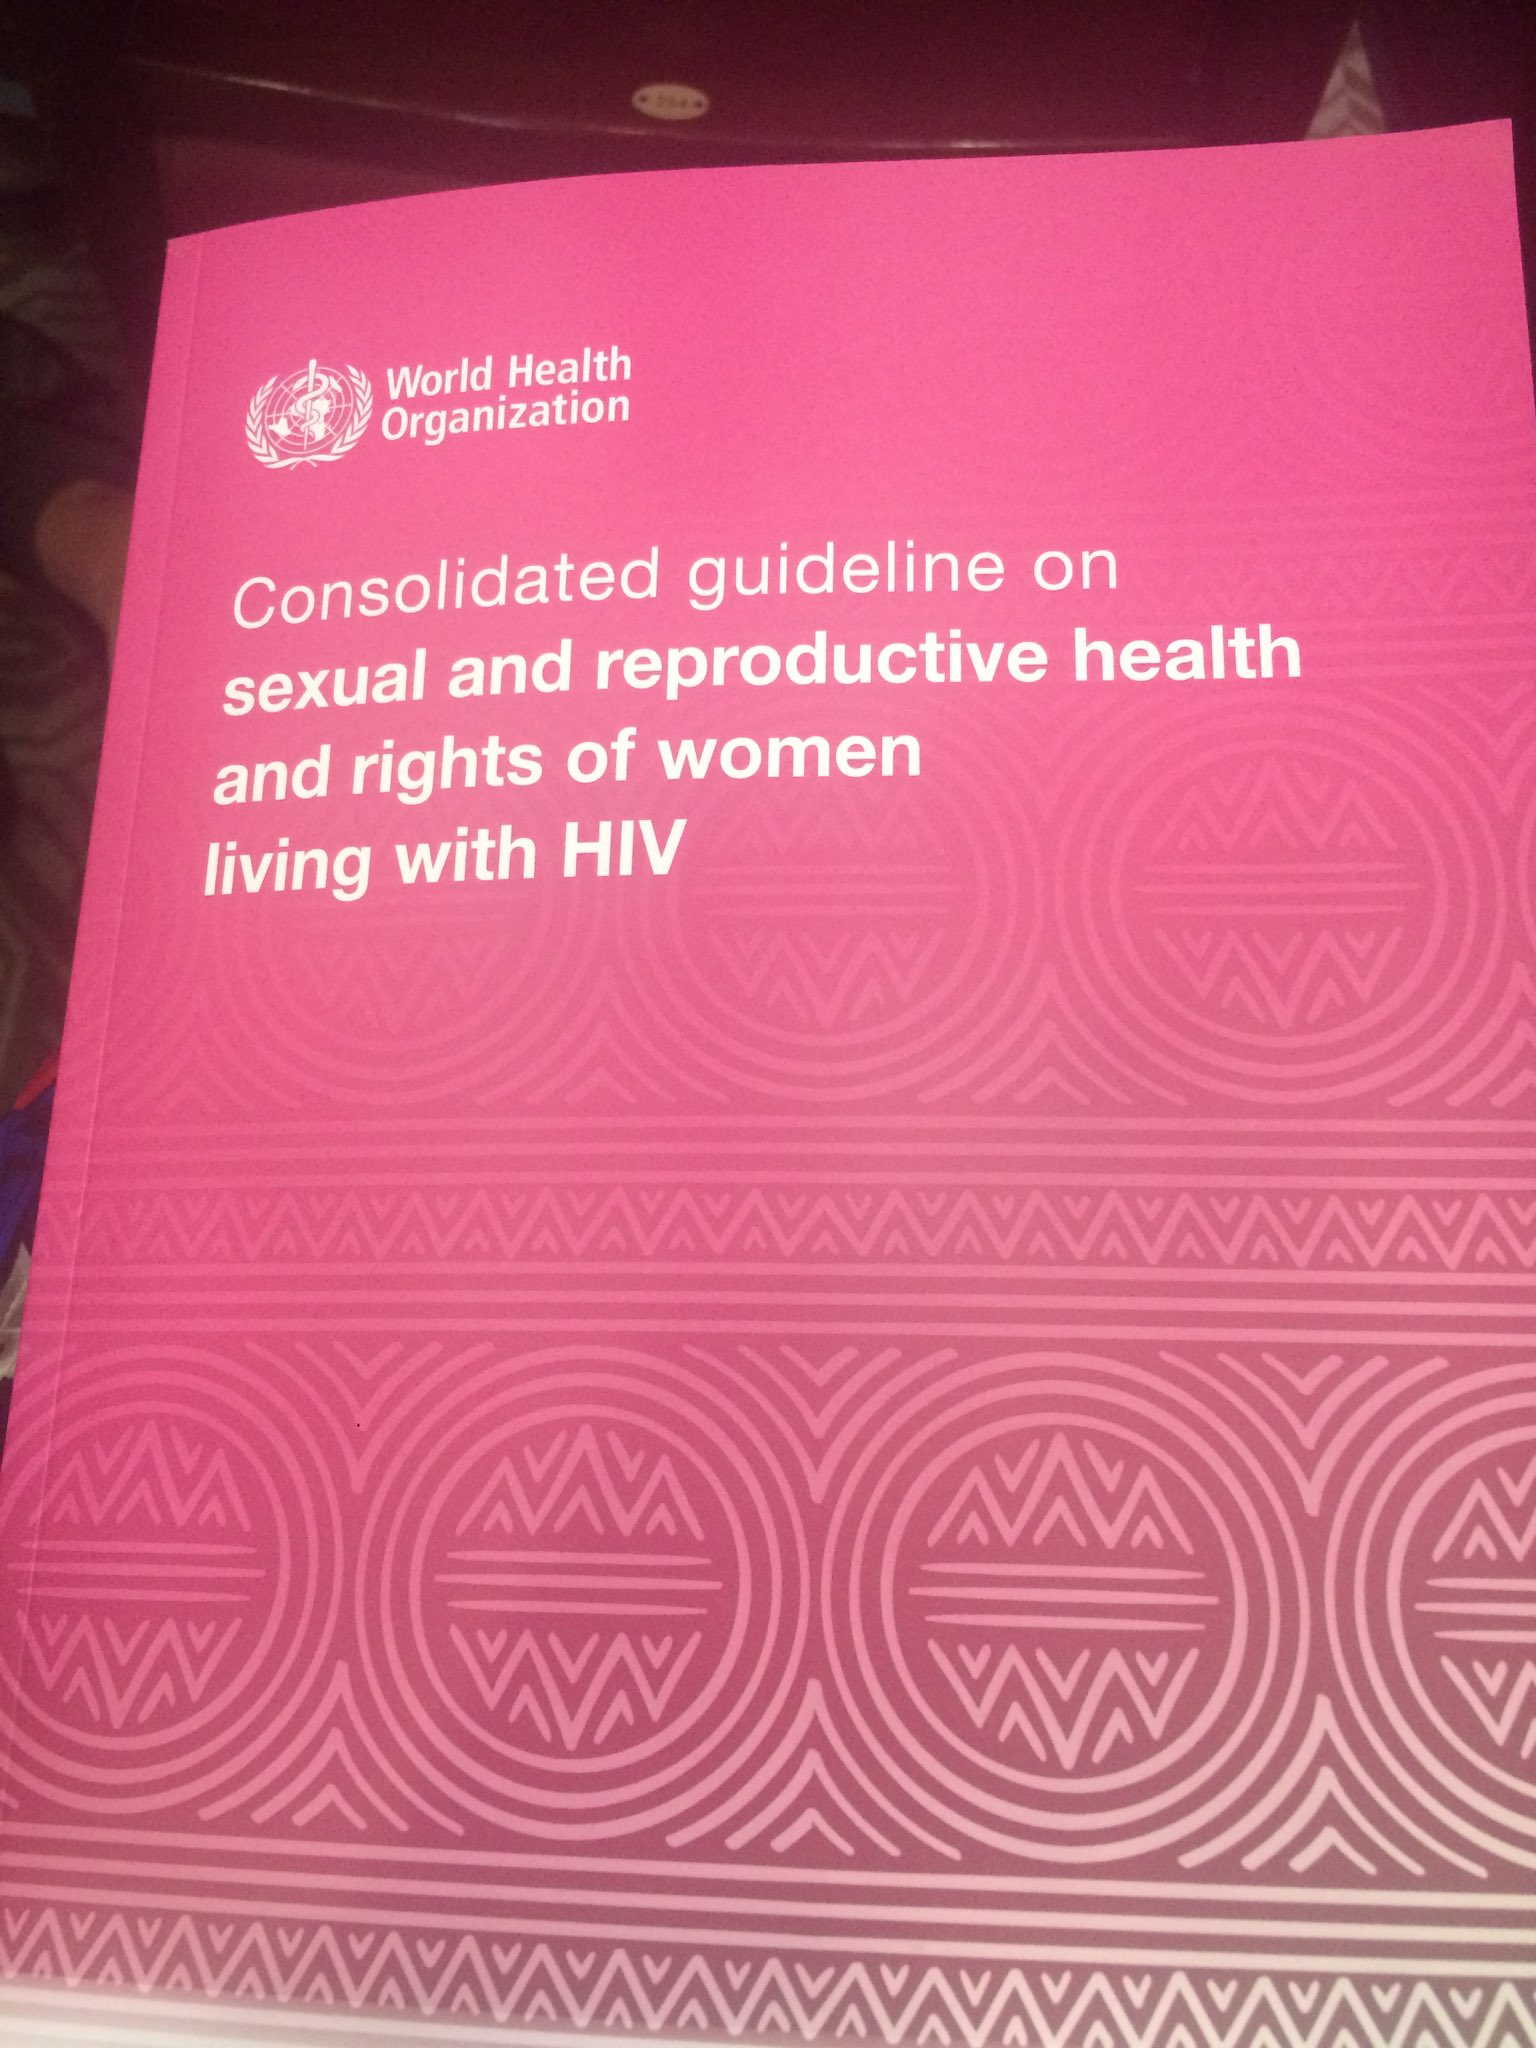 We're excited to be at the launch of the @WHO guidelines on the sexual & reproductive health & rights of women living with HIV #womenHIVSRHR https://t.co/ejvTmE5lOK